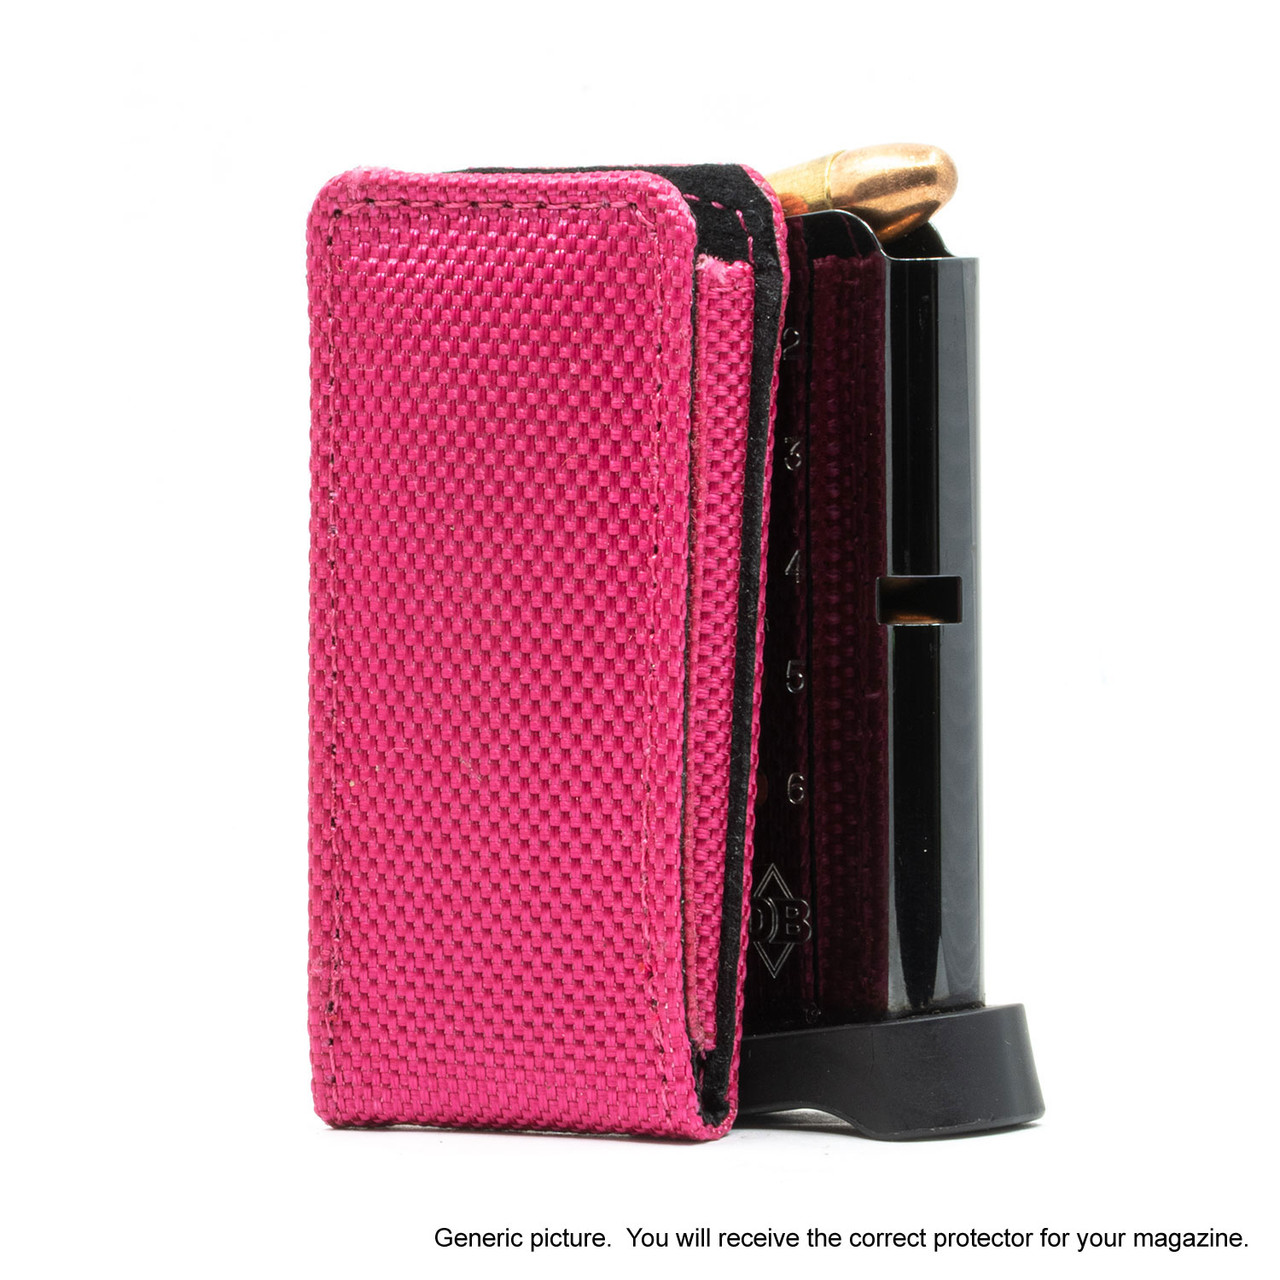 CZ 75D Compact Pink Covert Magazine Pocket Protector